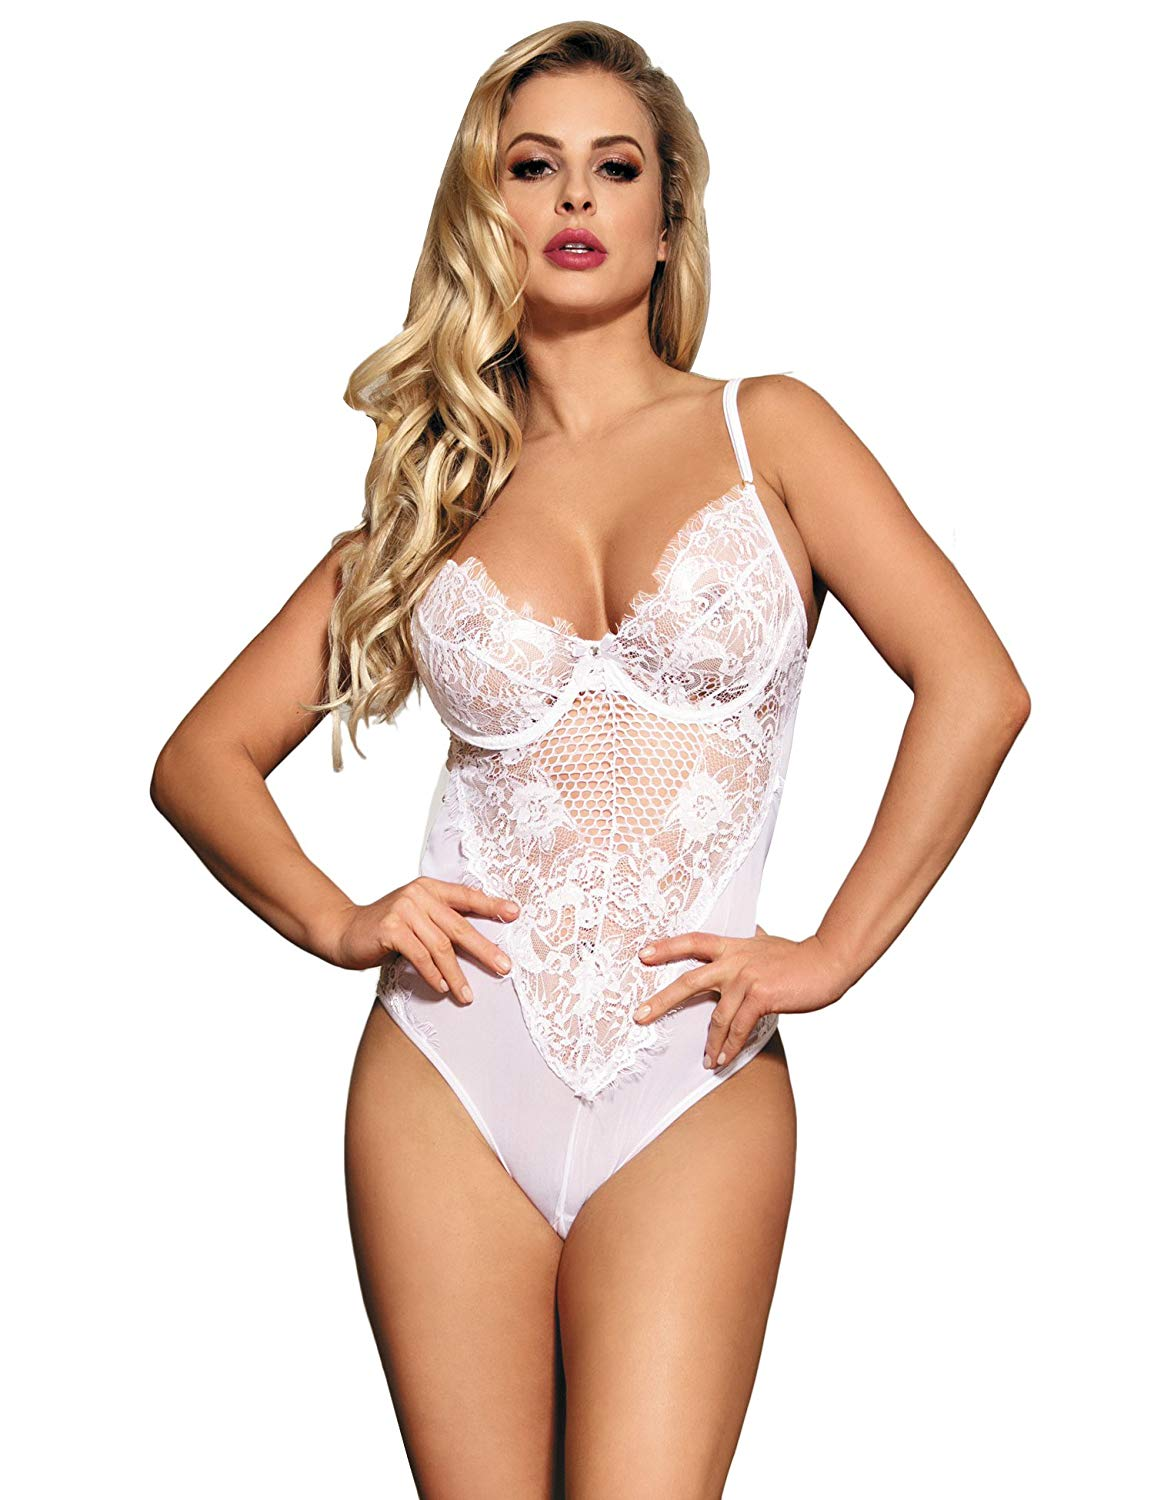 Get Quotations · comeondear Women Lace Teddy Bodysuit Mesh Babydoll Outfit  Plus Size Lingerie Bodysuit 382321a01